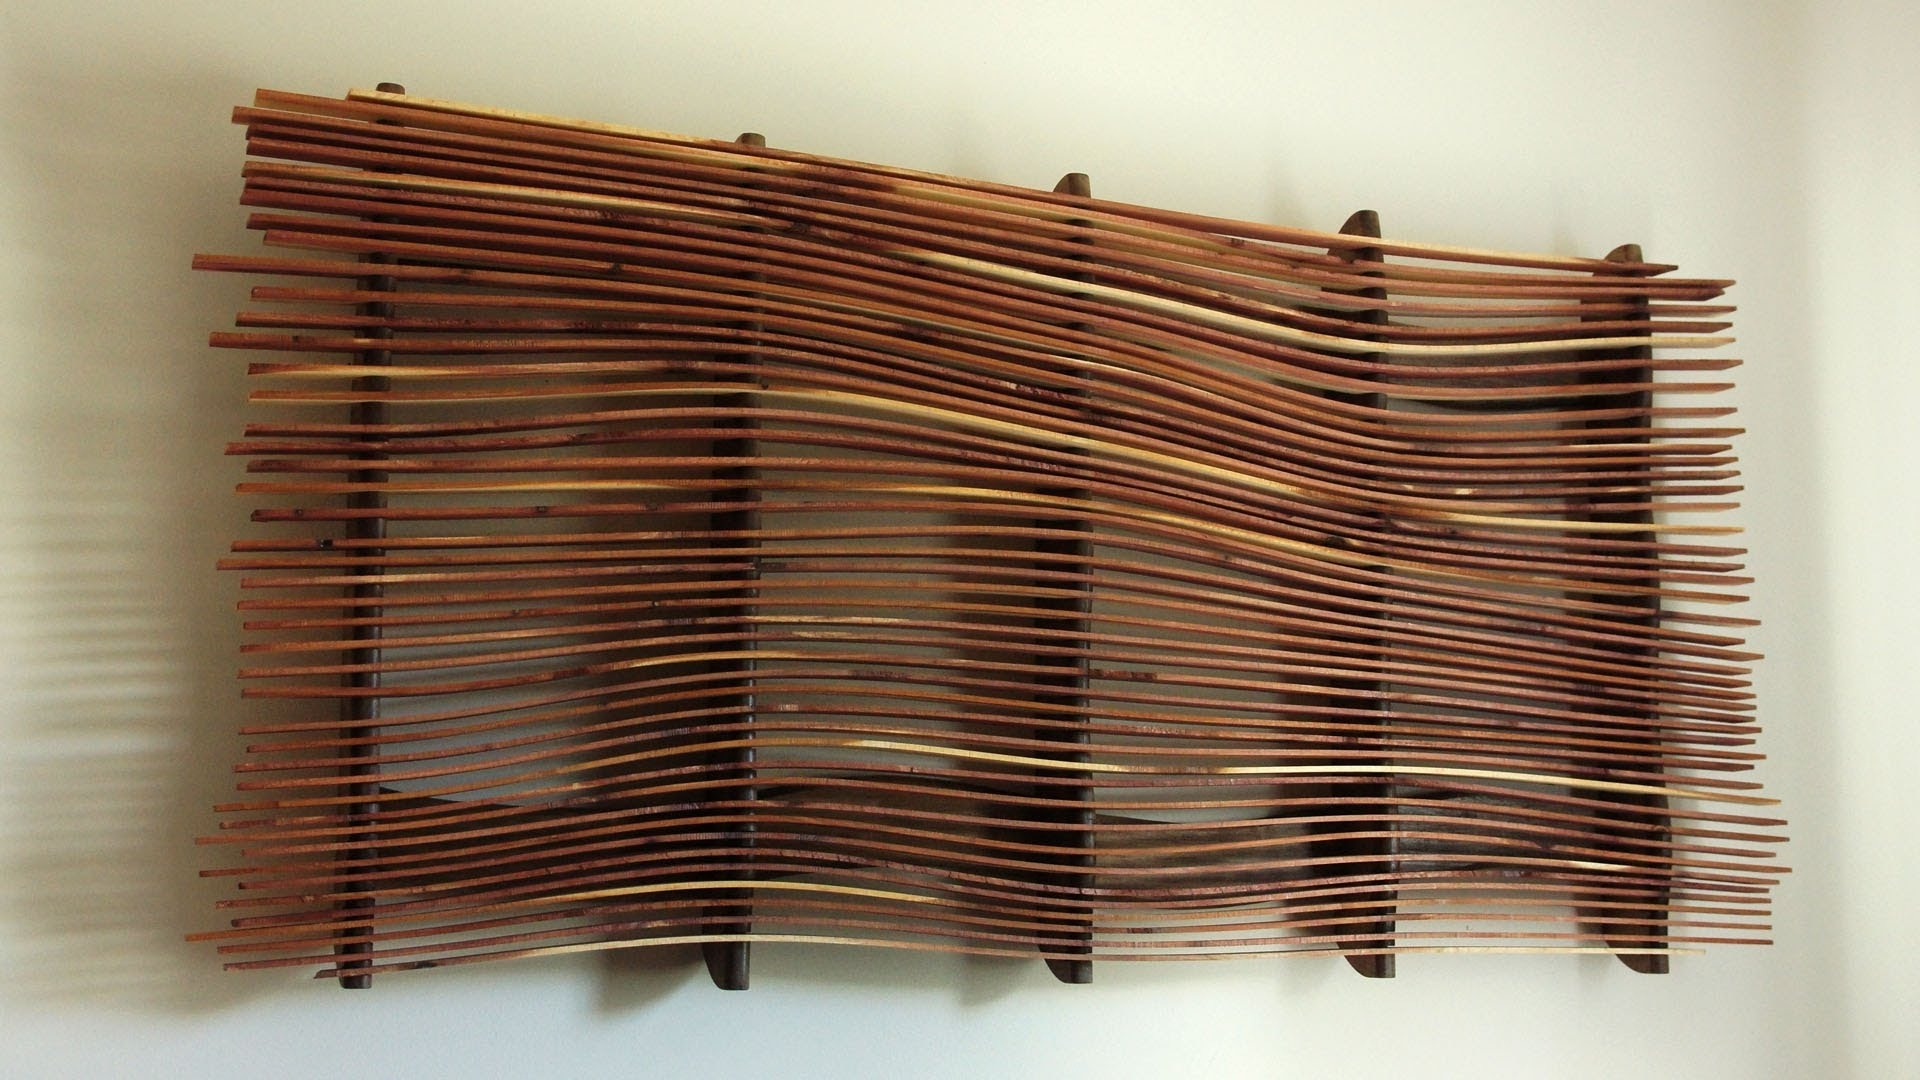 Newest Wall Art From Scrap Wood – Youtube Inside Wood Wall Art (View 7 of 15)